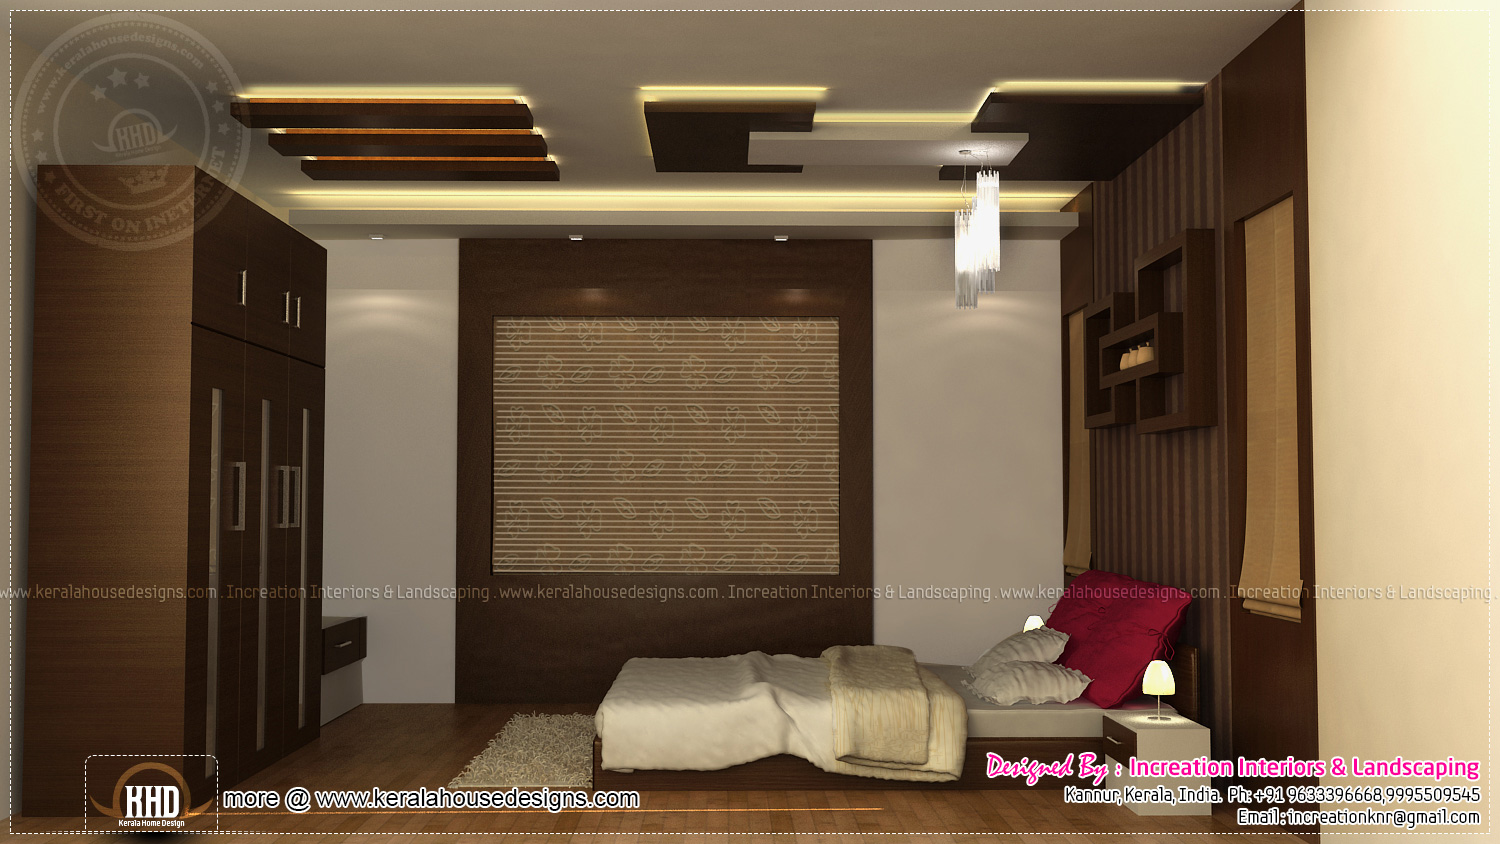 Interior designs by increation kannur kerala home for New room interior design